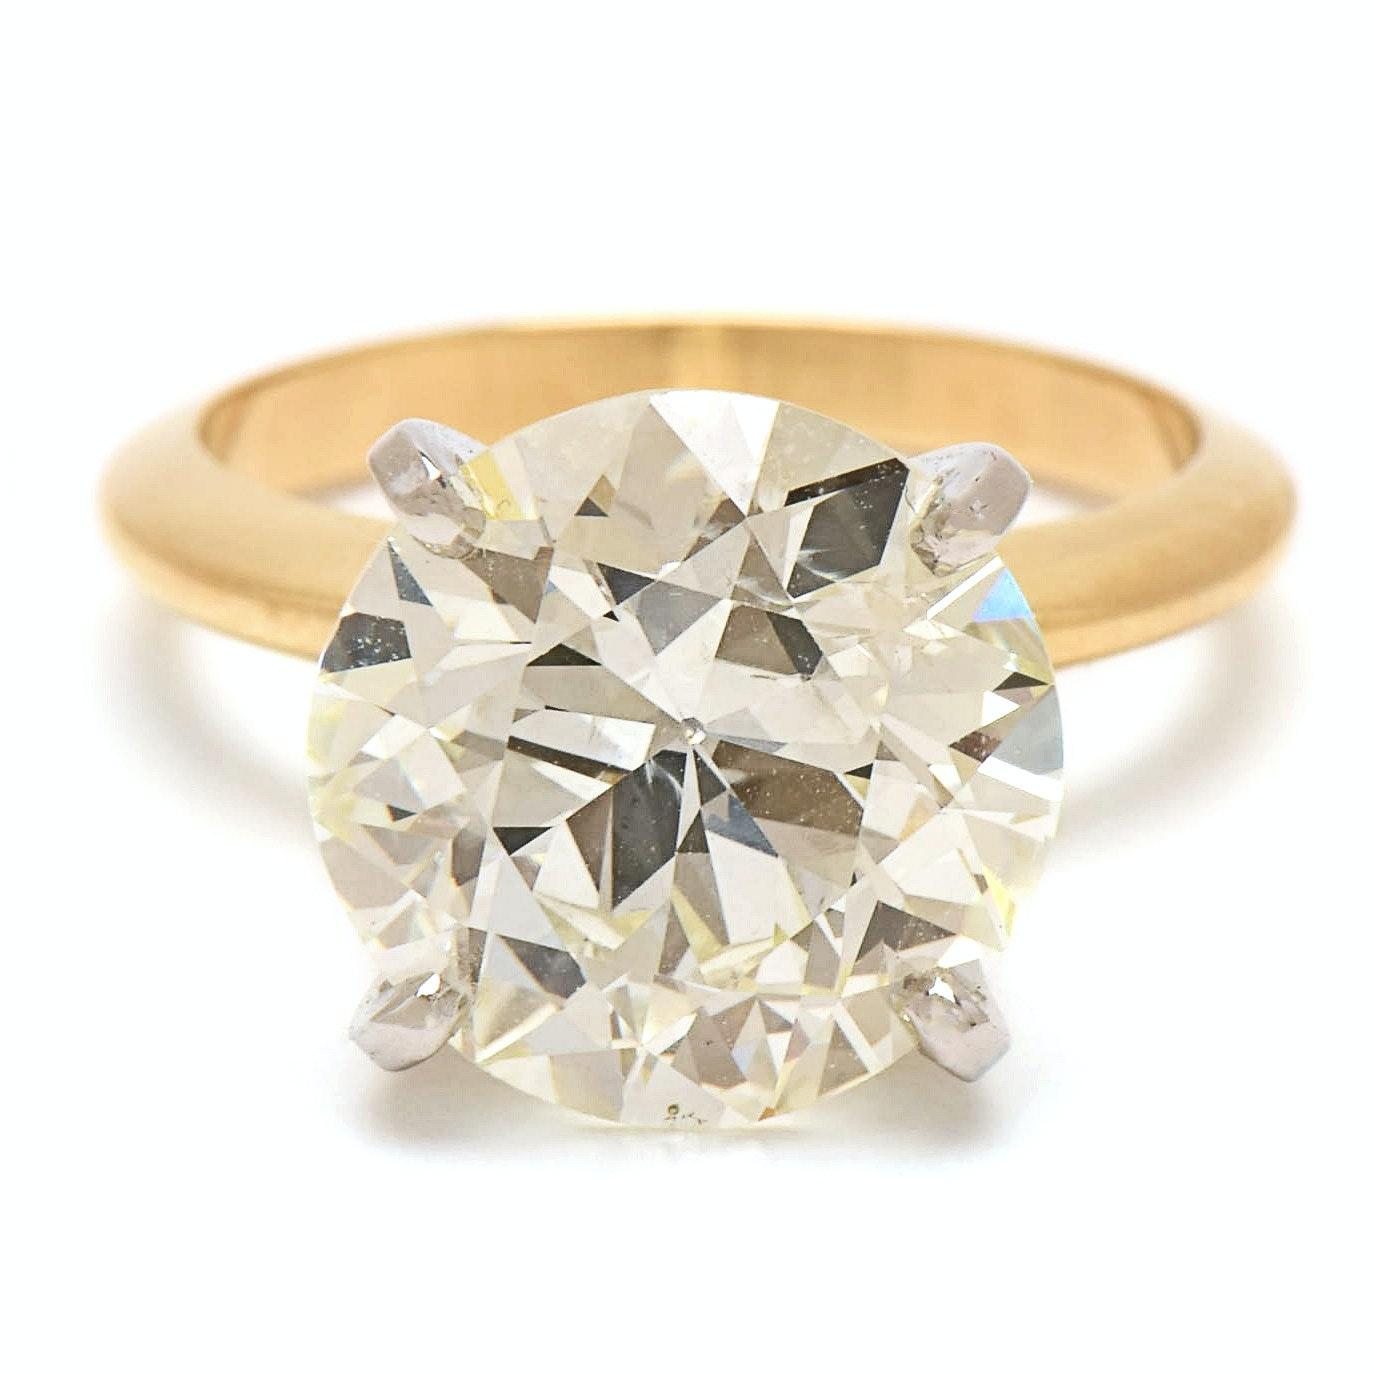 18K Yellow Gold 6.15 CT Circular Brilliant Cut Diamond Ring with Platinum Head